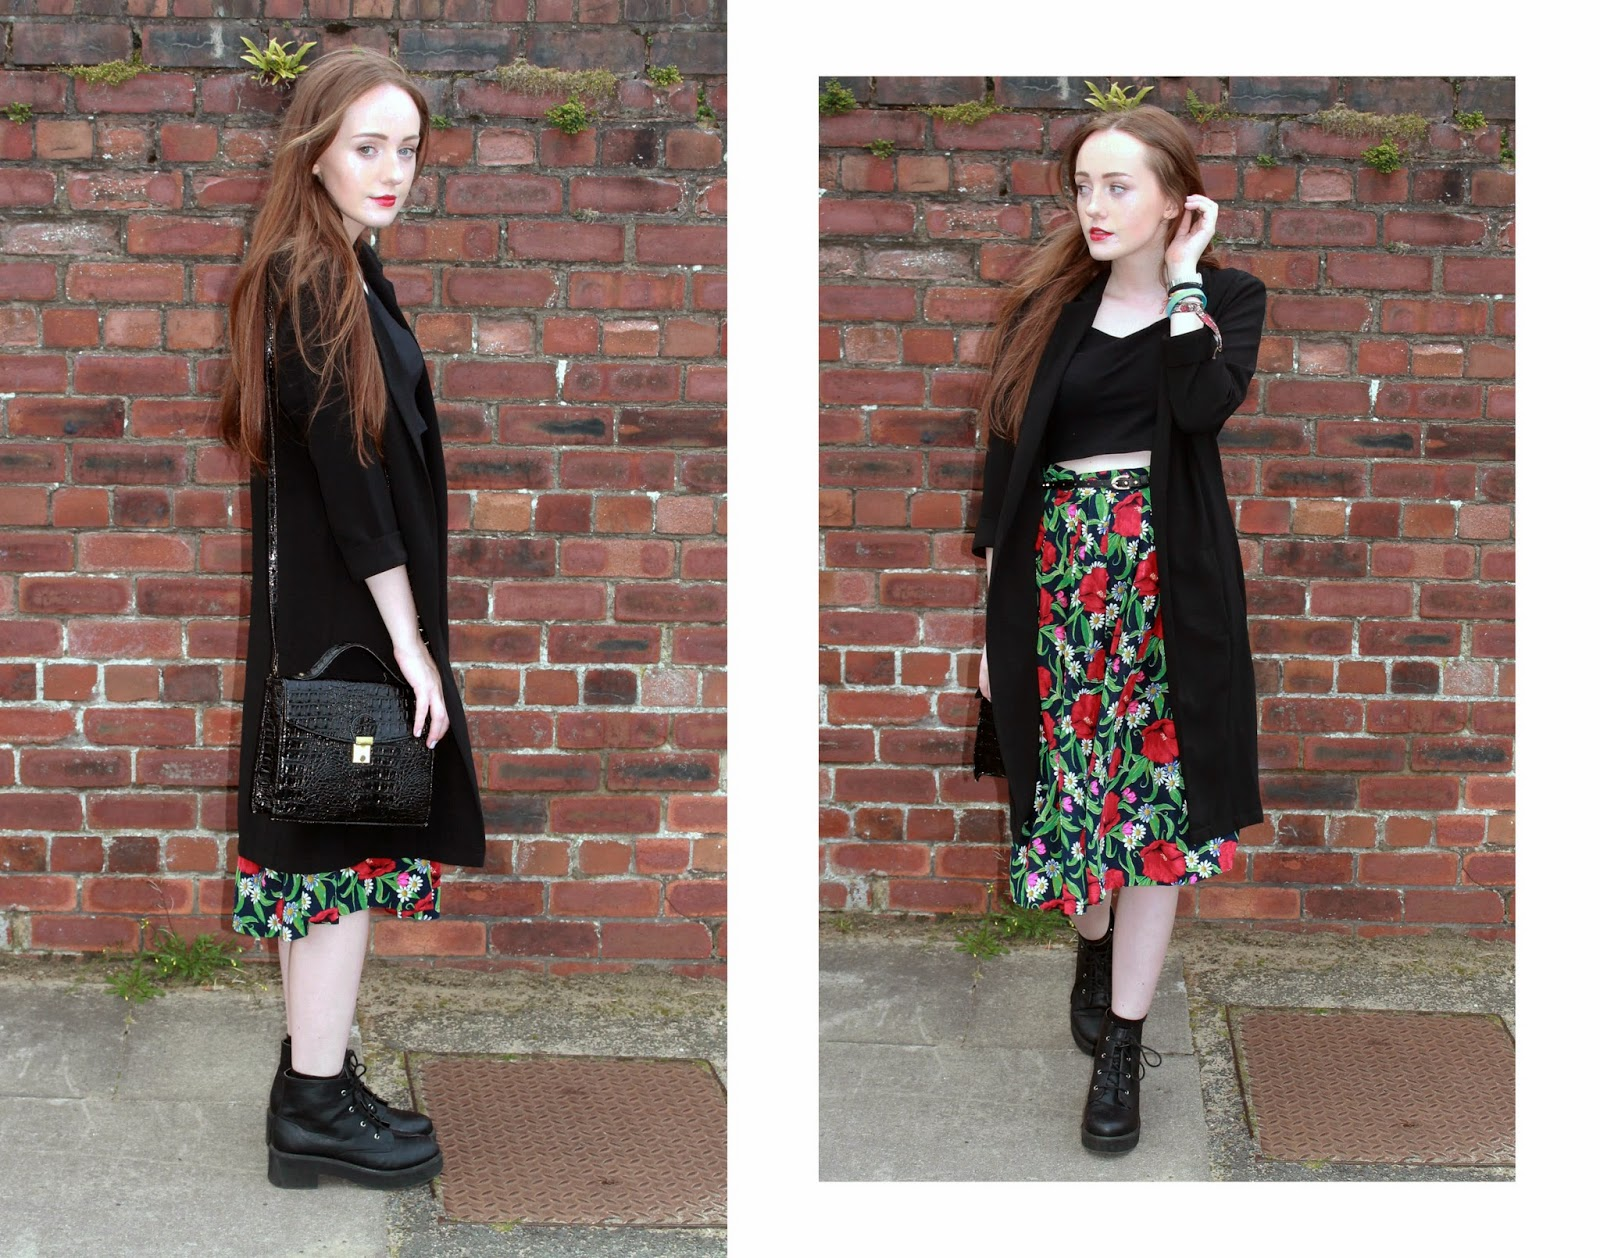 OOTD featuring primark black duster coat, black crop top, studded belt worn with vintage floral midi skirt, primark black satchel and asos ankle boots summer 2014